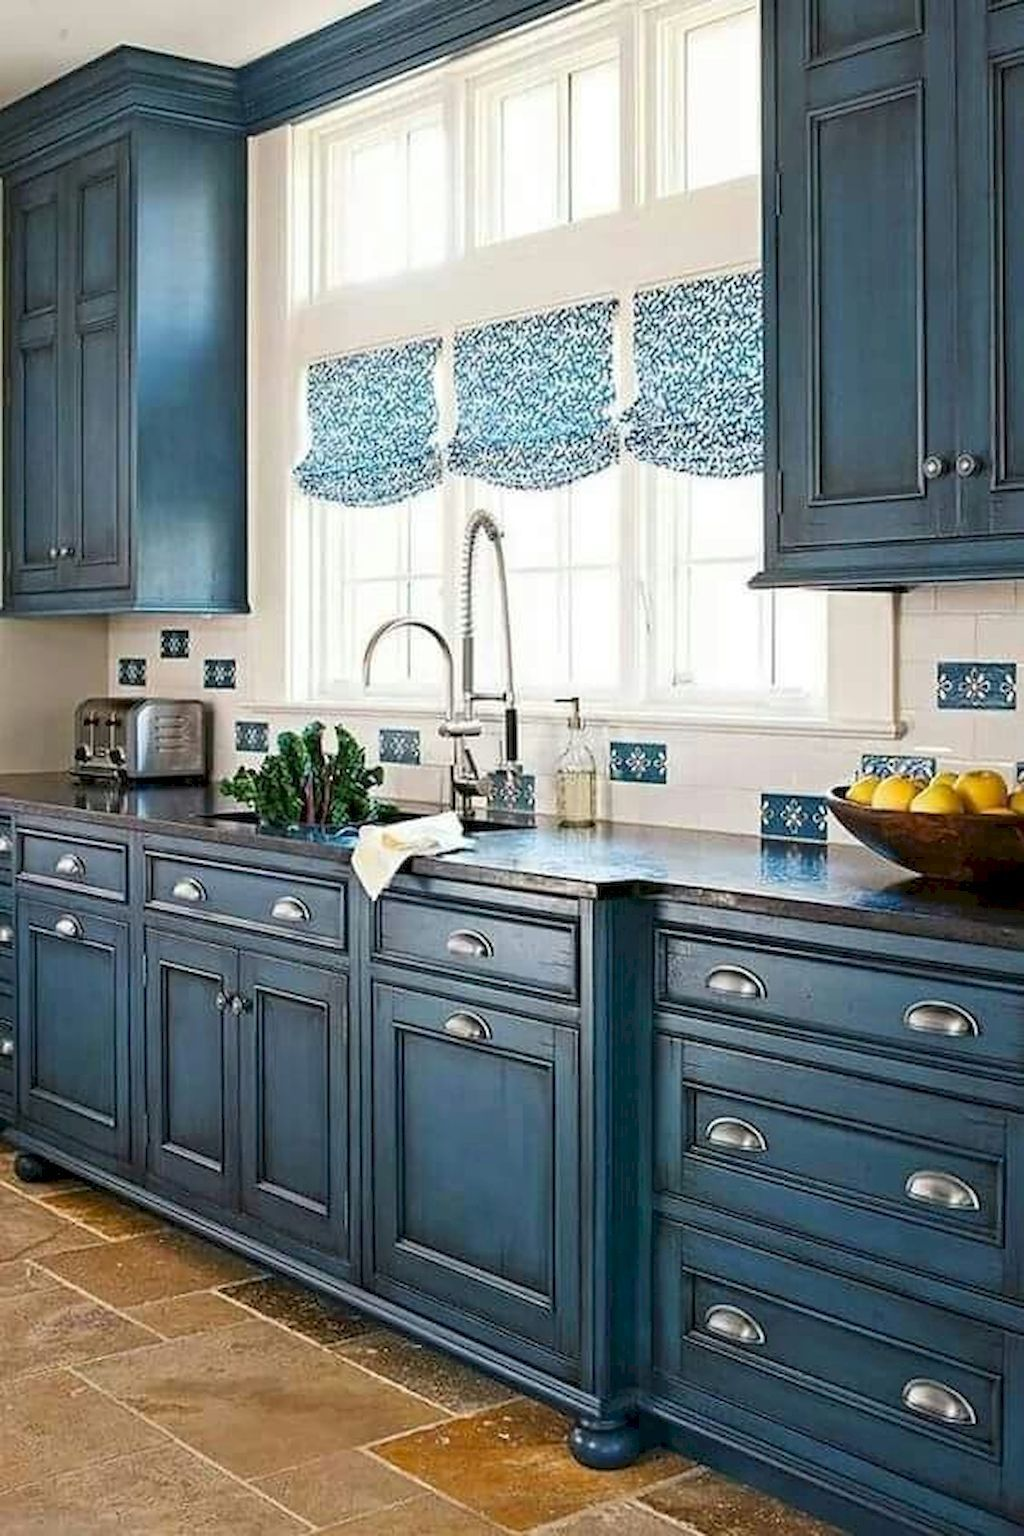 French Country Kitchen Design & Decor Ideas (41) | French country ...